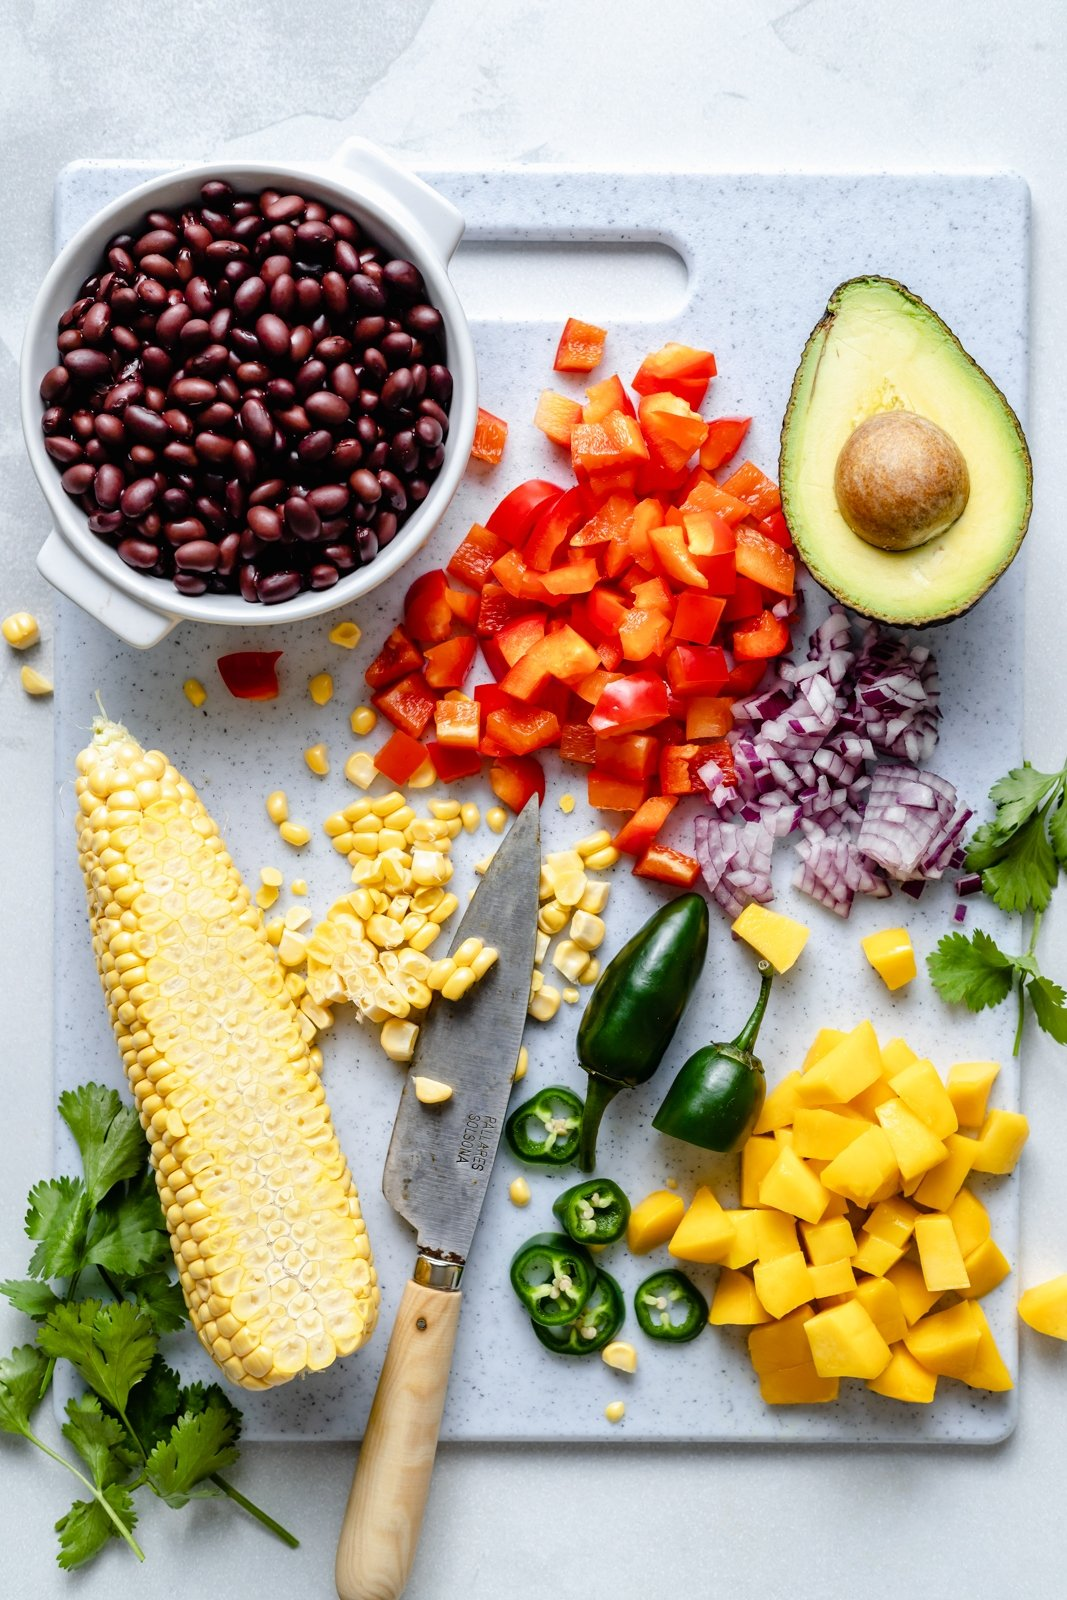 ingredients for a green rice burrito bowl on a cutting board